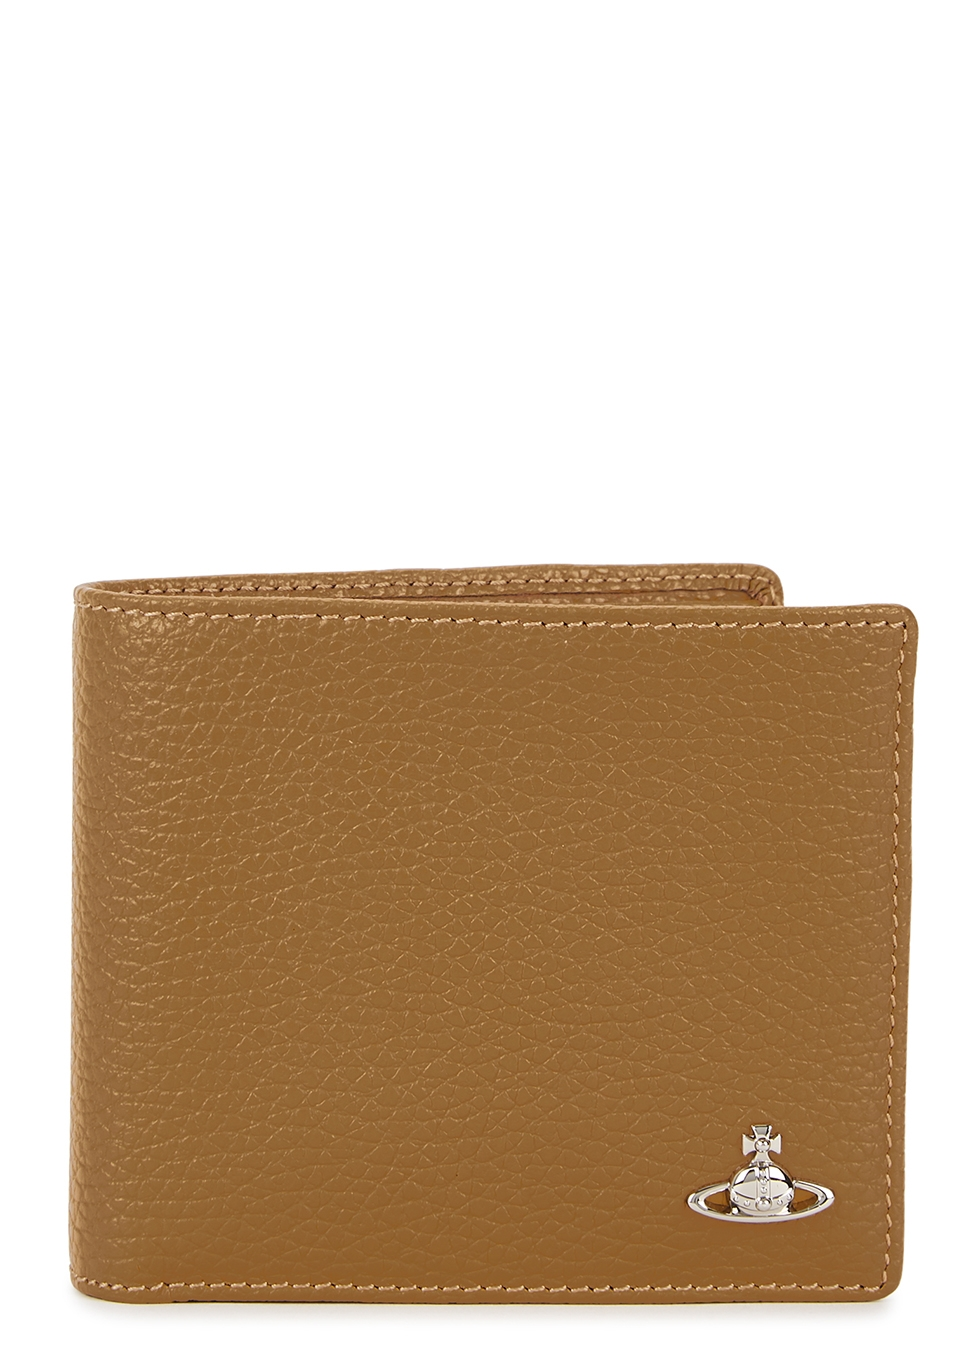 Mustard grained leather wallet